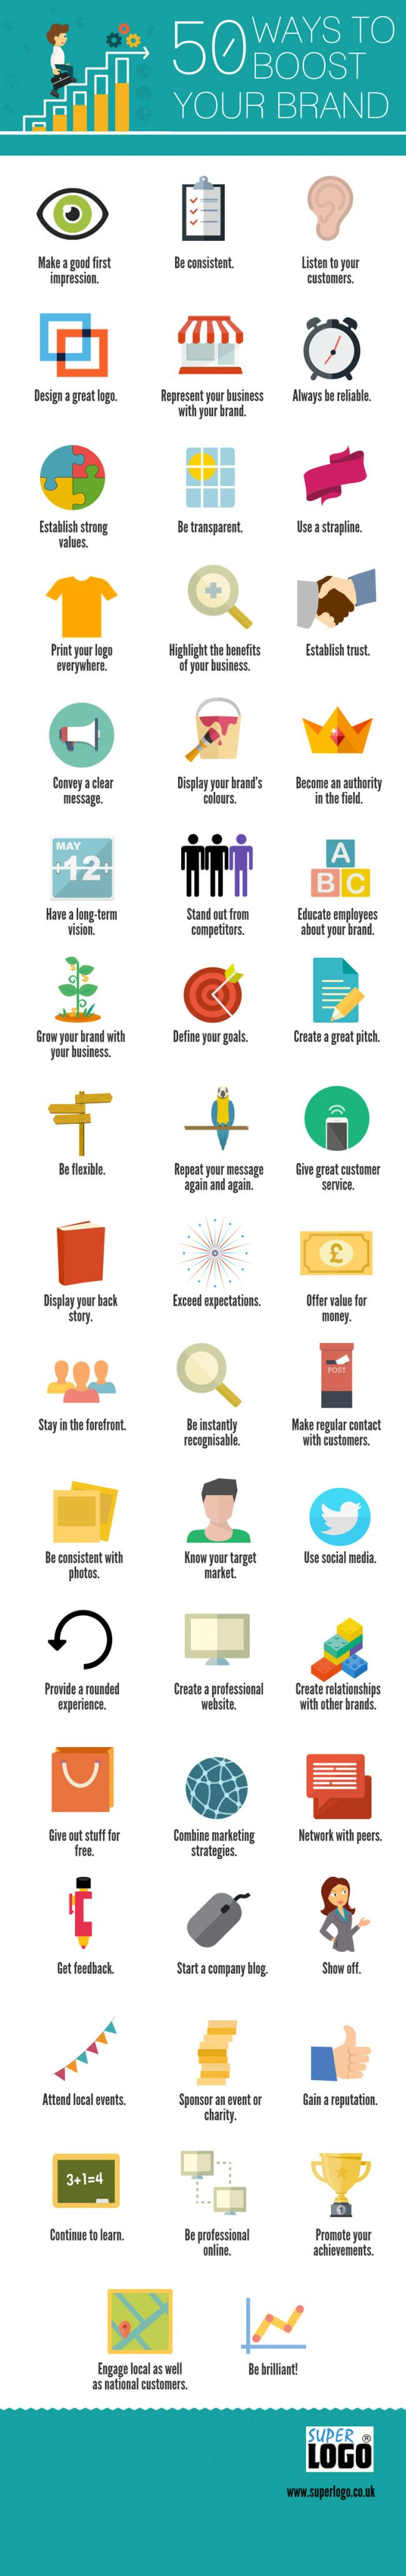 50 Ways To Boost Your Brand [Infographic] - Smashfreakz